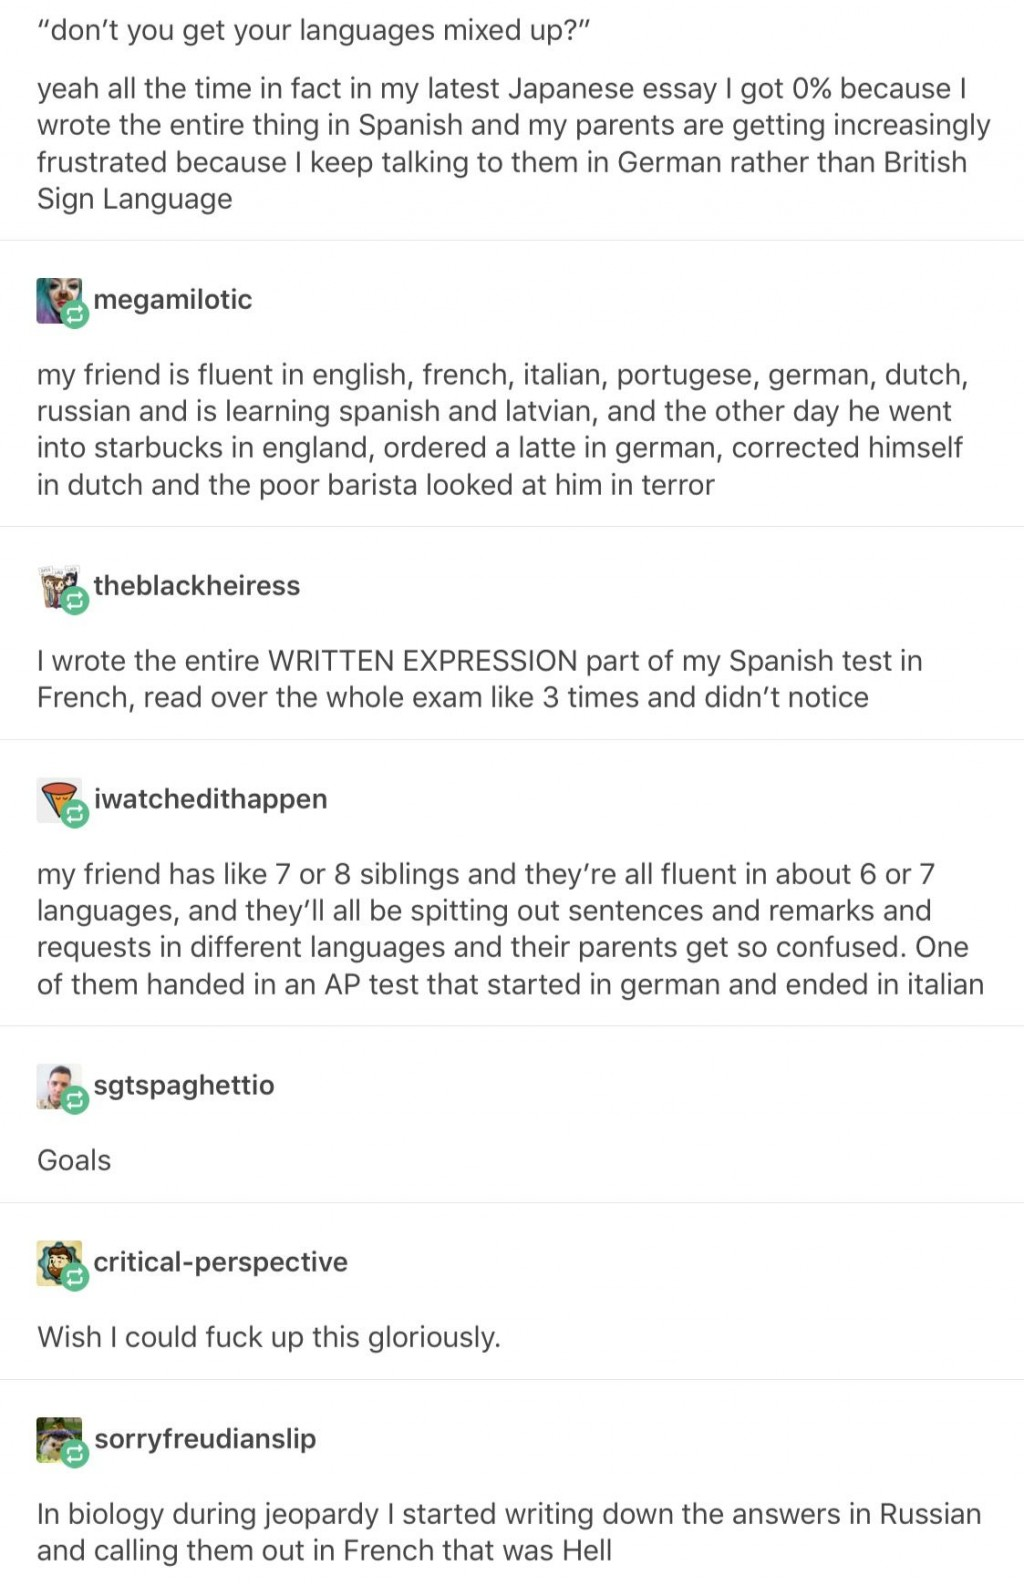 003 Essay In Spanish I Started Writing An And It Going To French Google Translate Teaching Essays Phrases Write My How About Yourself Tips Your Unbelievable On University Language Examples What Does Mean Slang Large